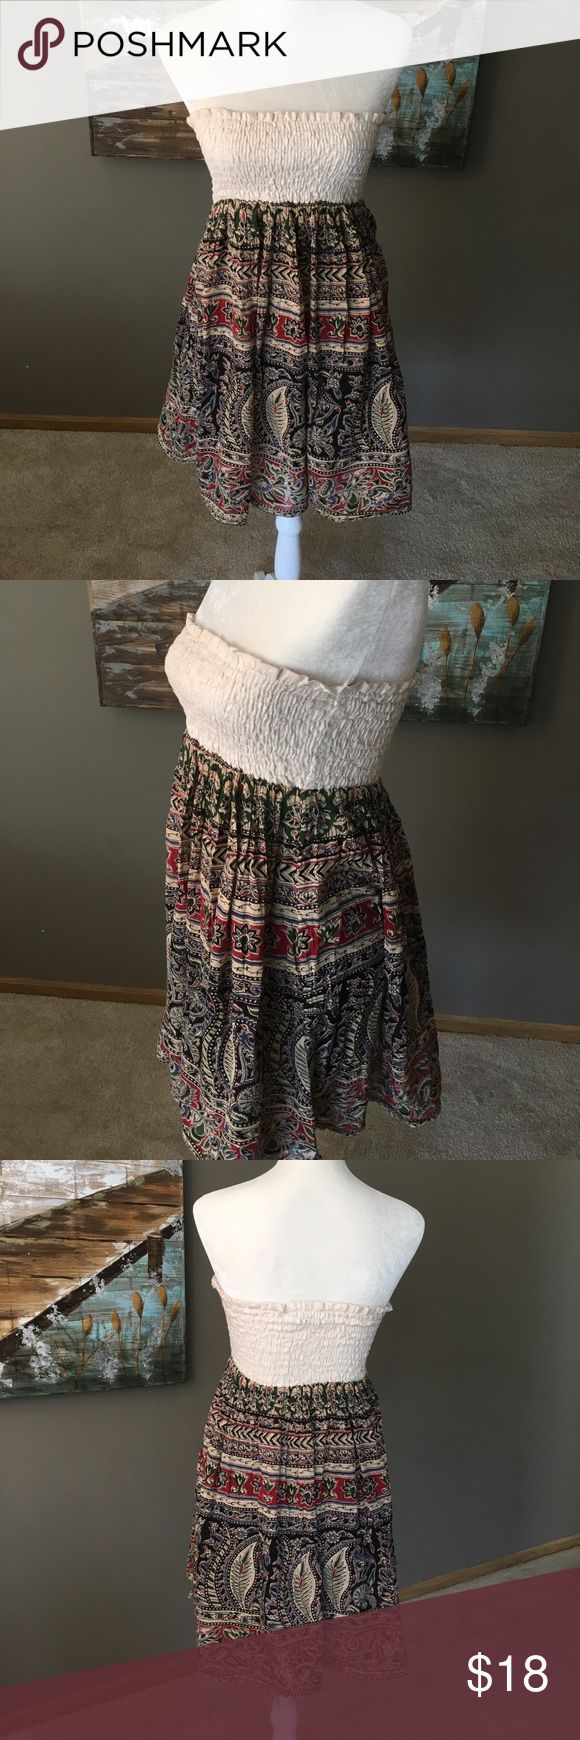 """Vintage Havana strapless dress Multi colored/design dress with a cream puckered bandeau top dress from Vintage Havana. Length is 25 1/2"""" Also has a built in slip Vintage Havana Dresses Strapless"""